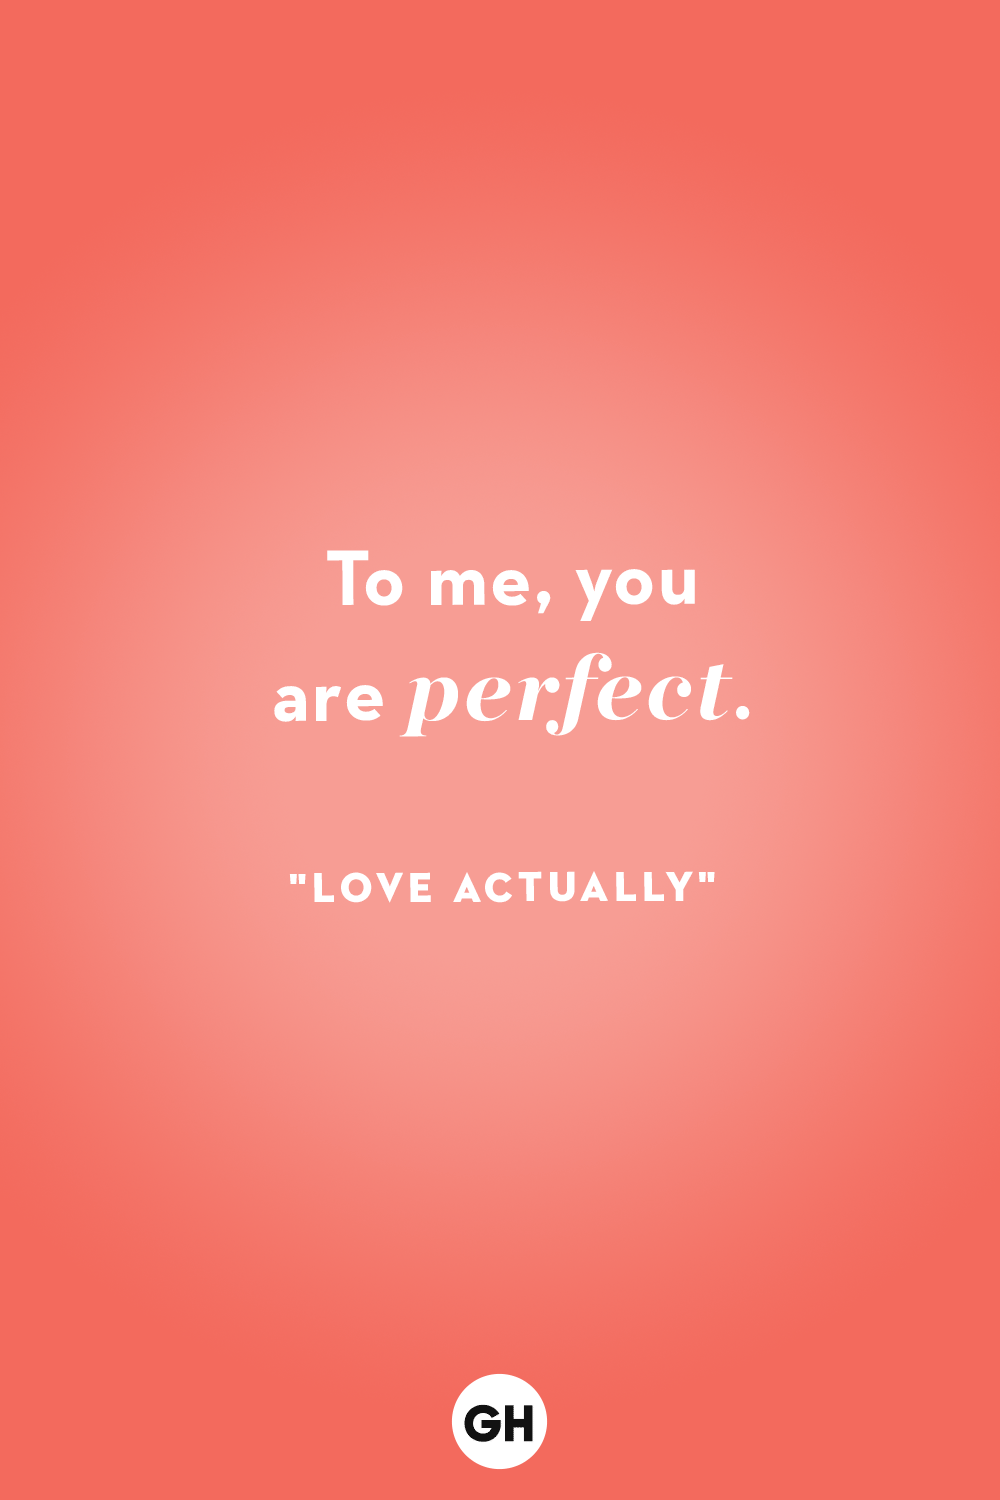 6 Best Love Quotes of All Time - Cute Famous Sayings About Love